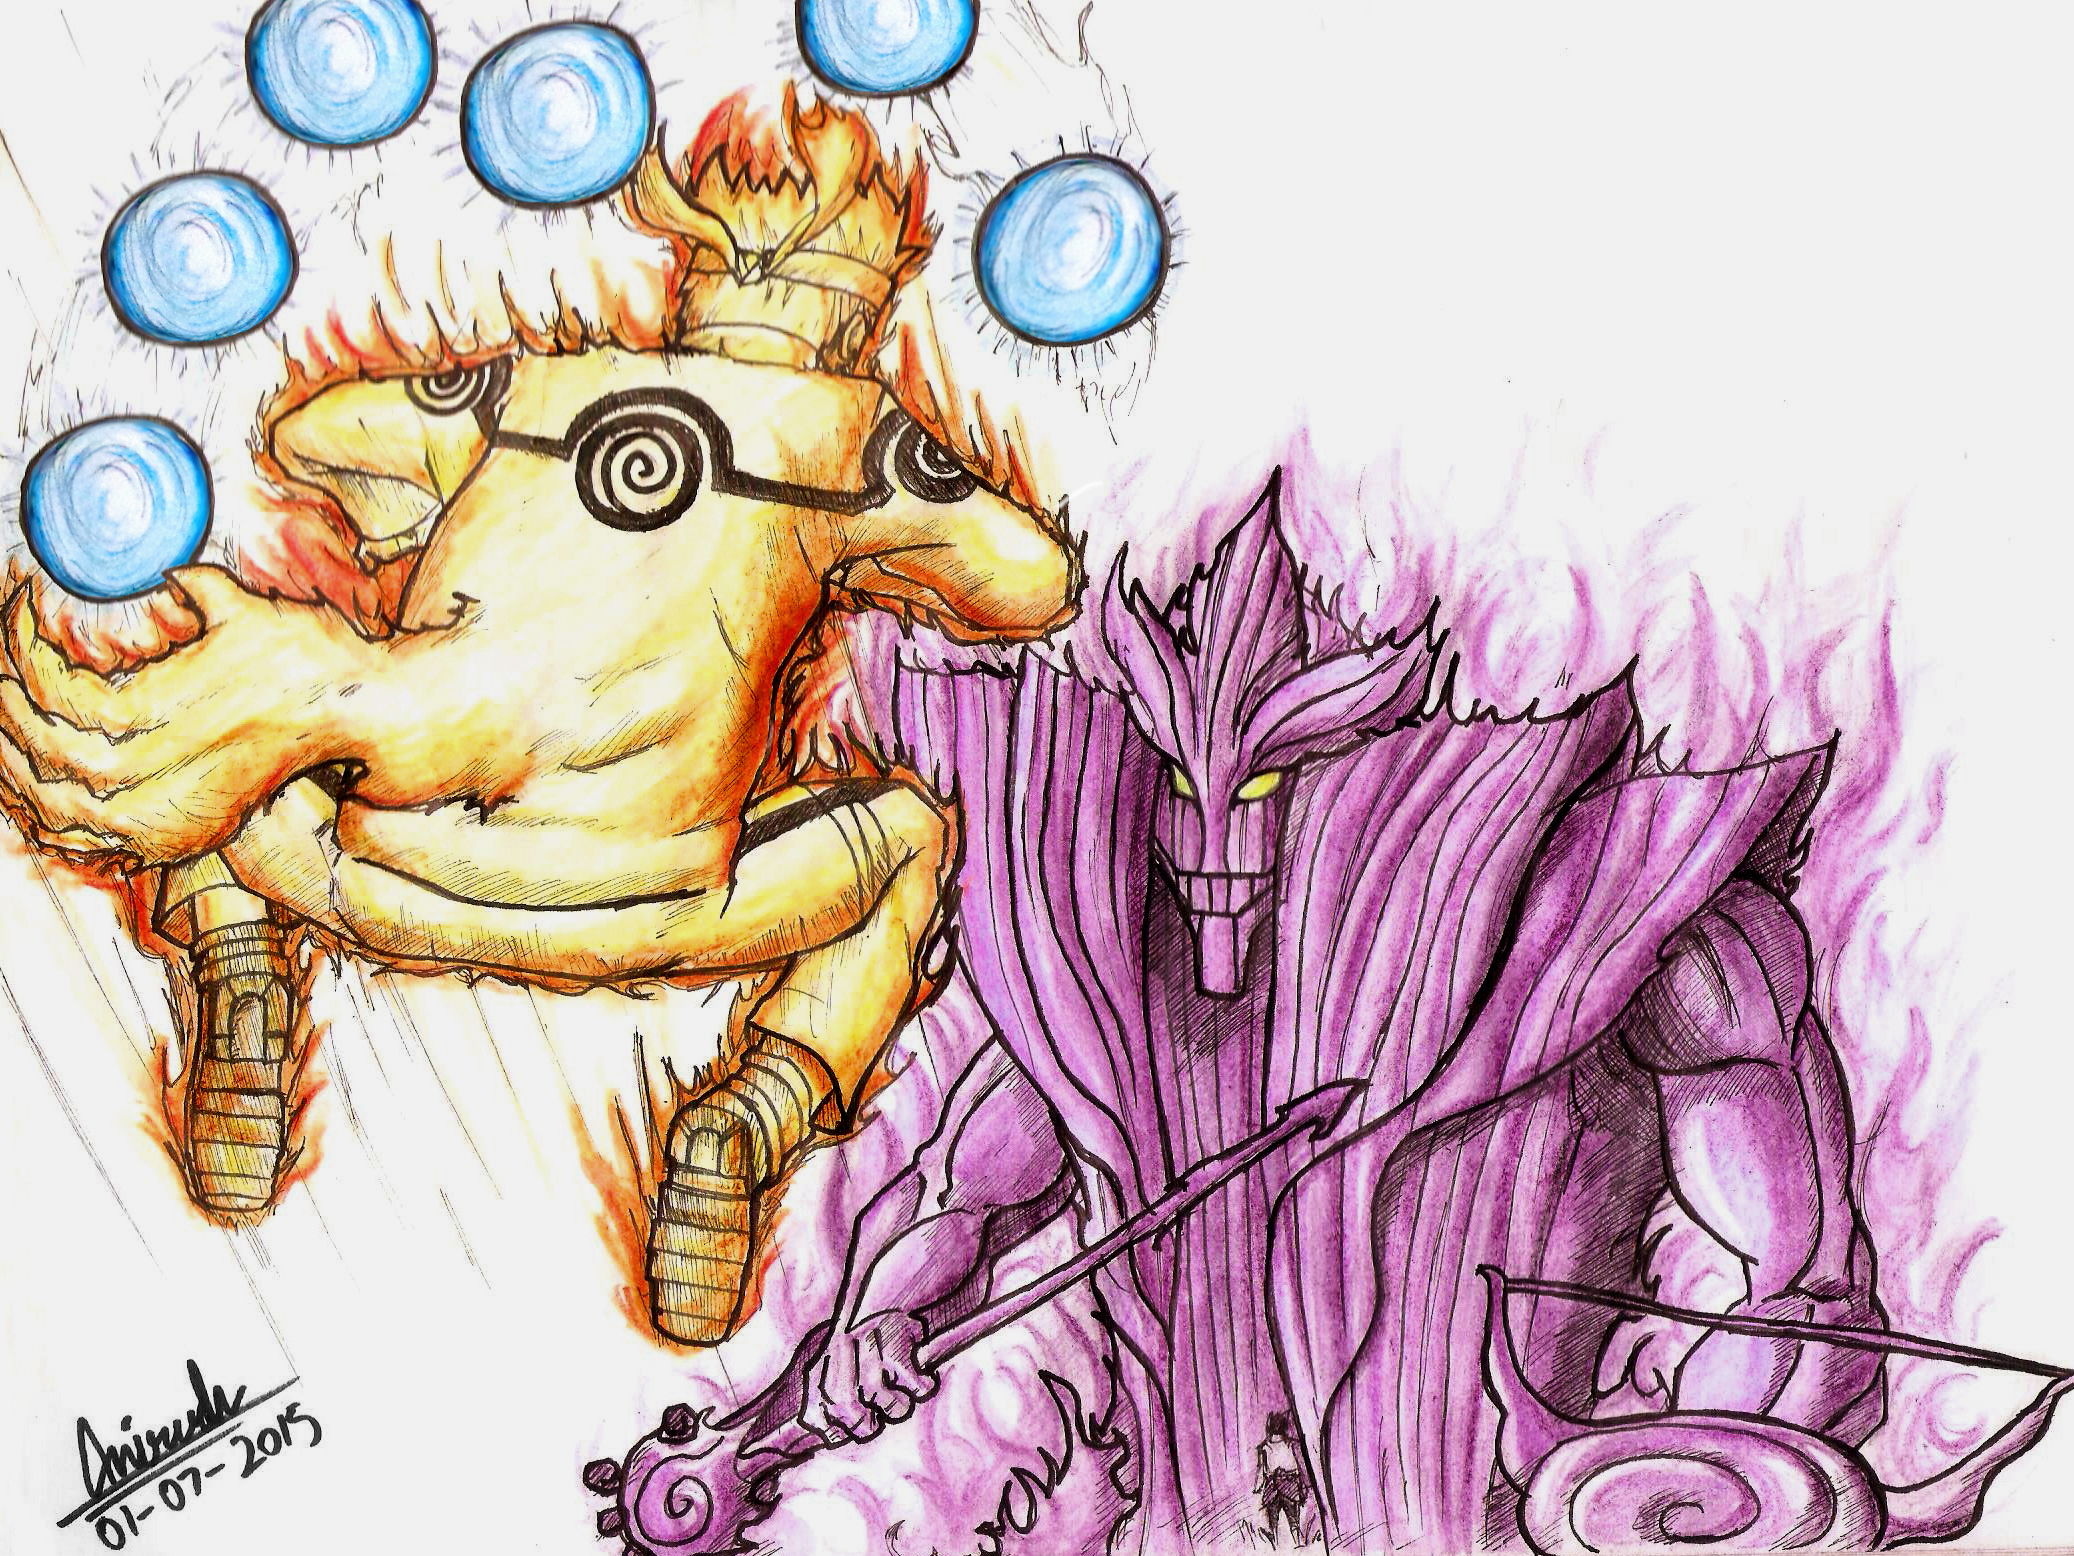 naruto chakra mode vs sasuke susanoo by toonager on deviantart